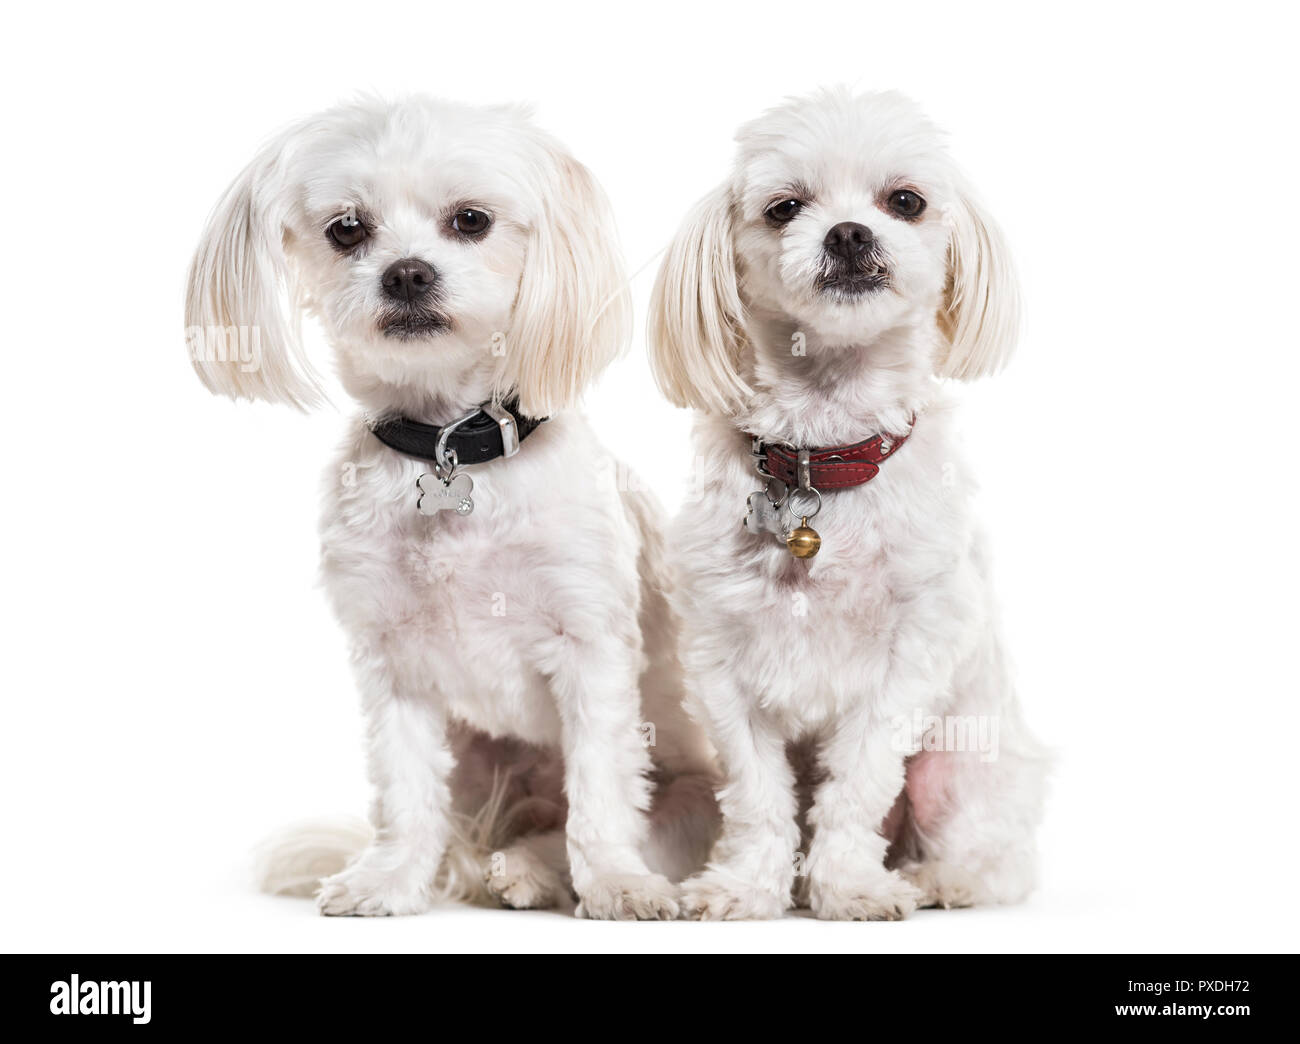 Maltese Dogs 4 Years Old Sitting Against White Background Stock Photo Alamy